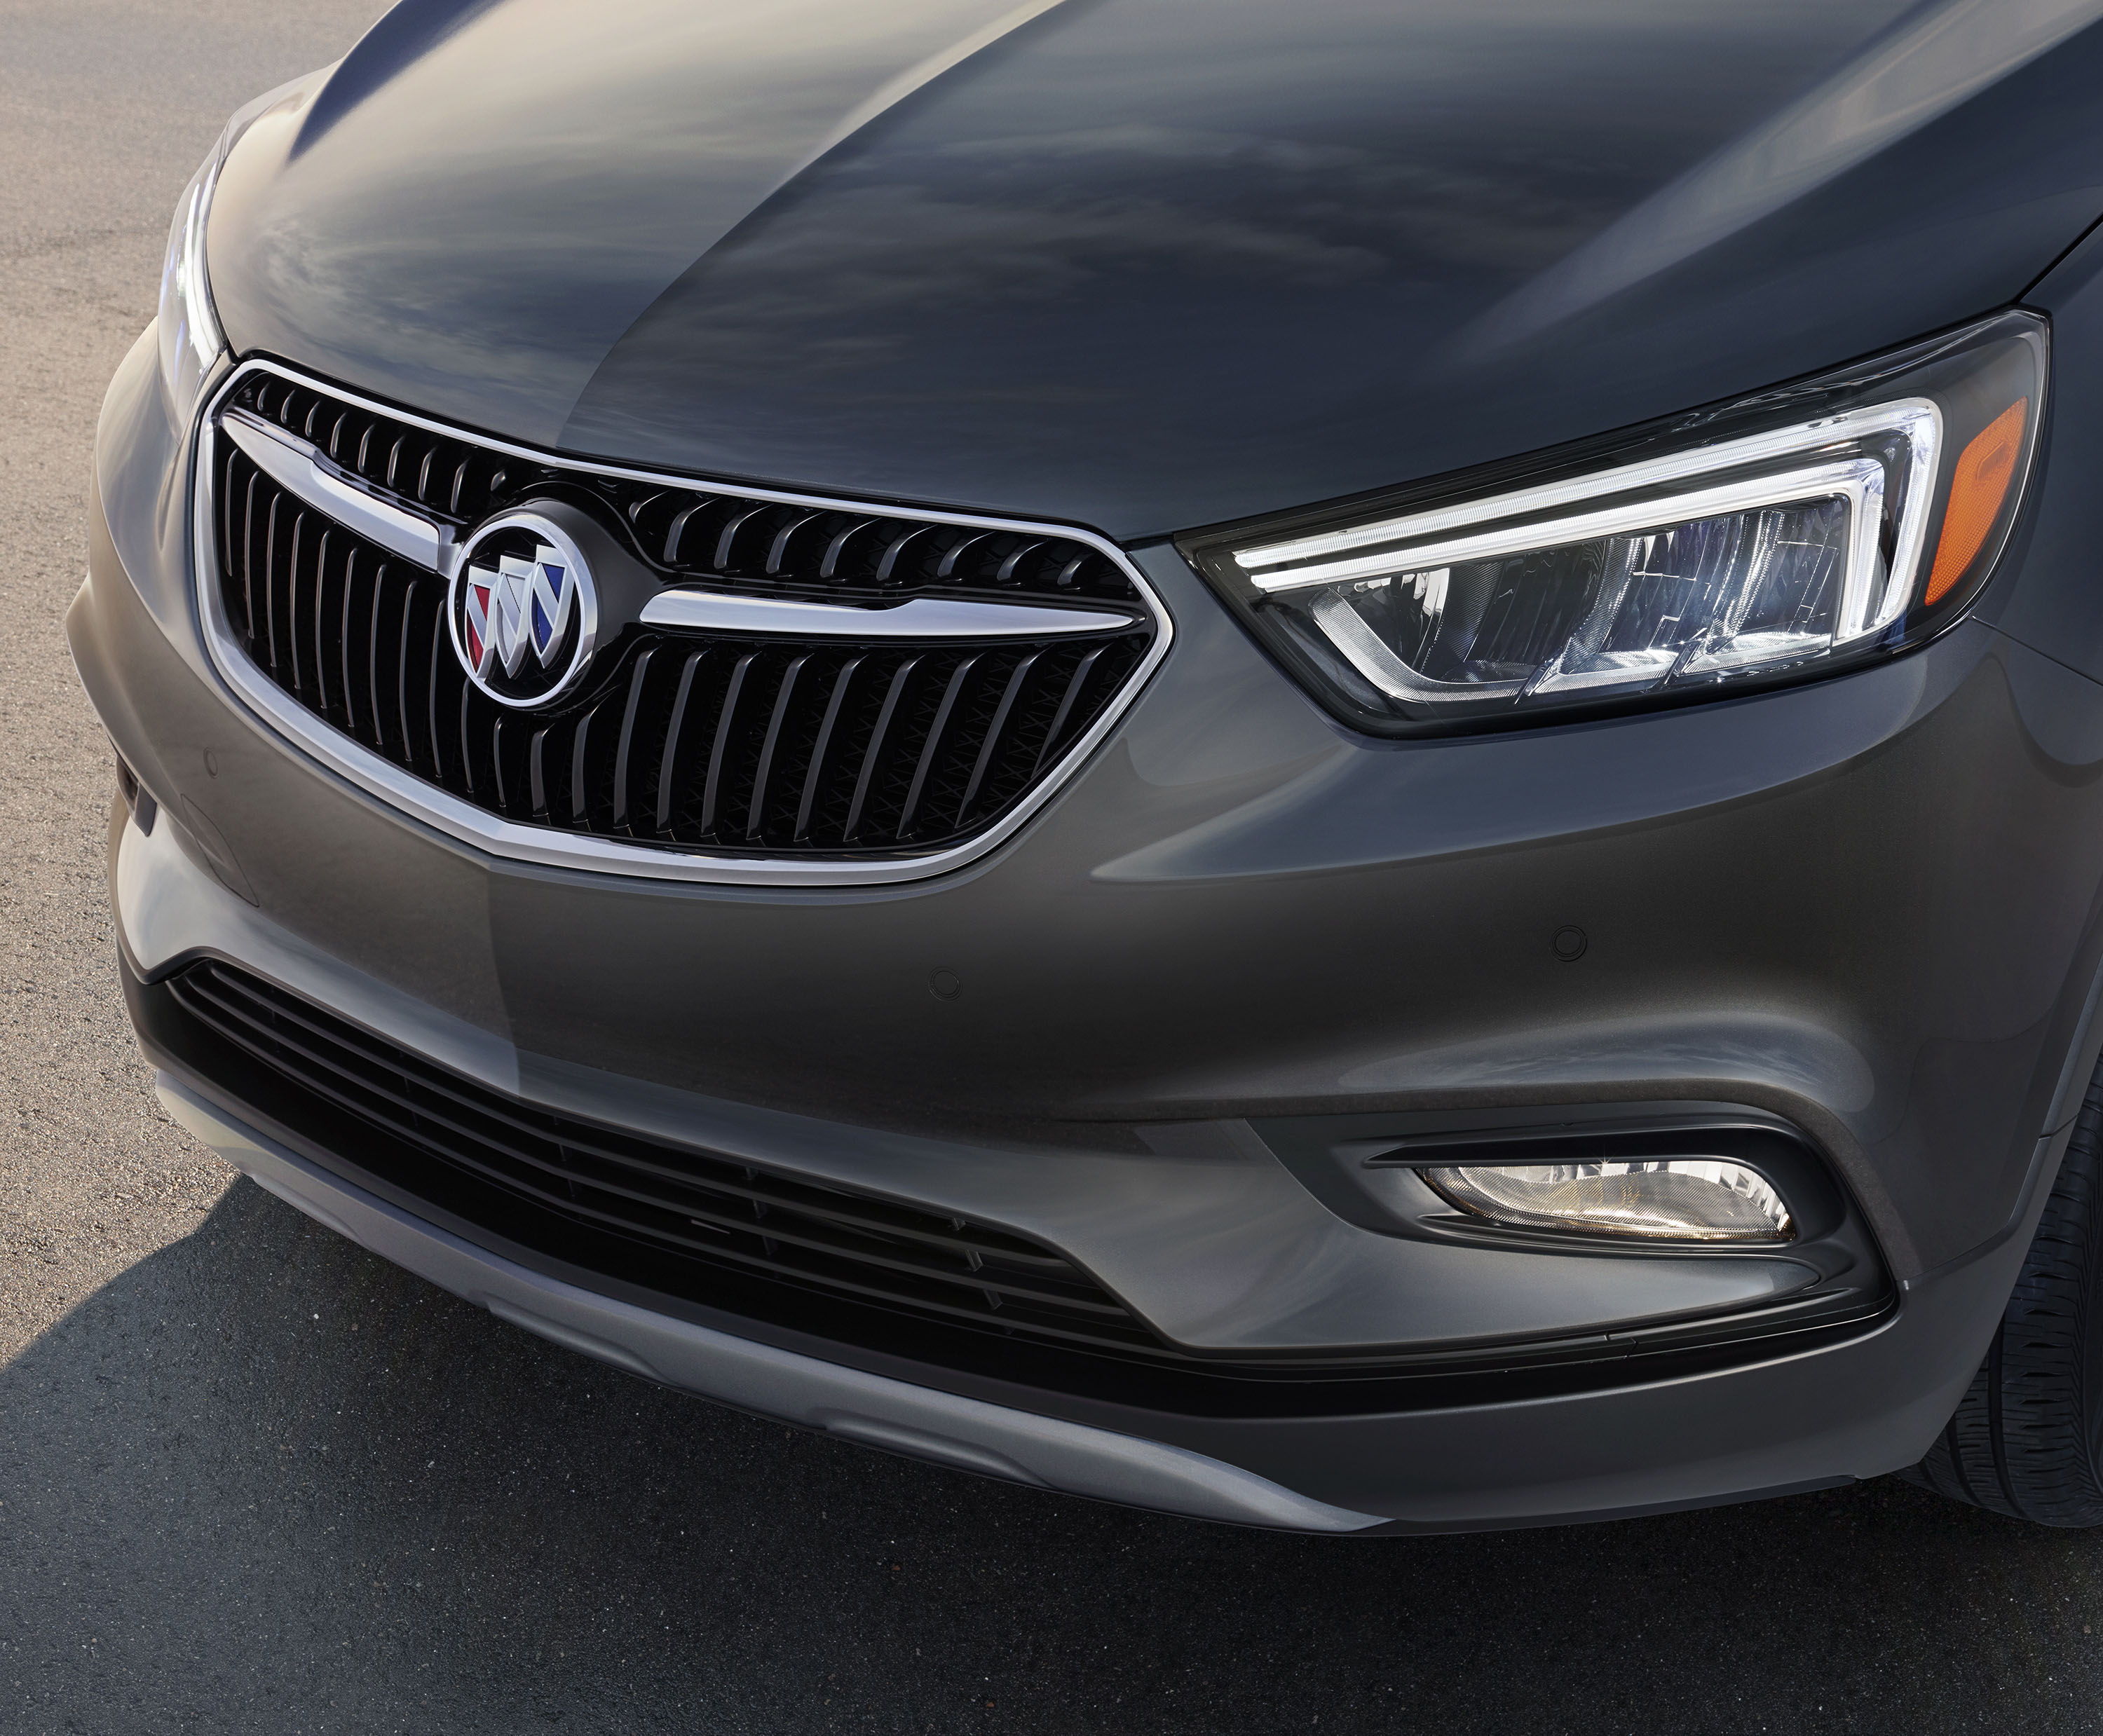 news content detail driven updates us en define envision buick pages media feb suv customer